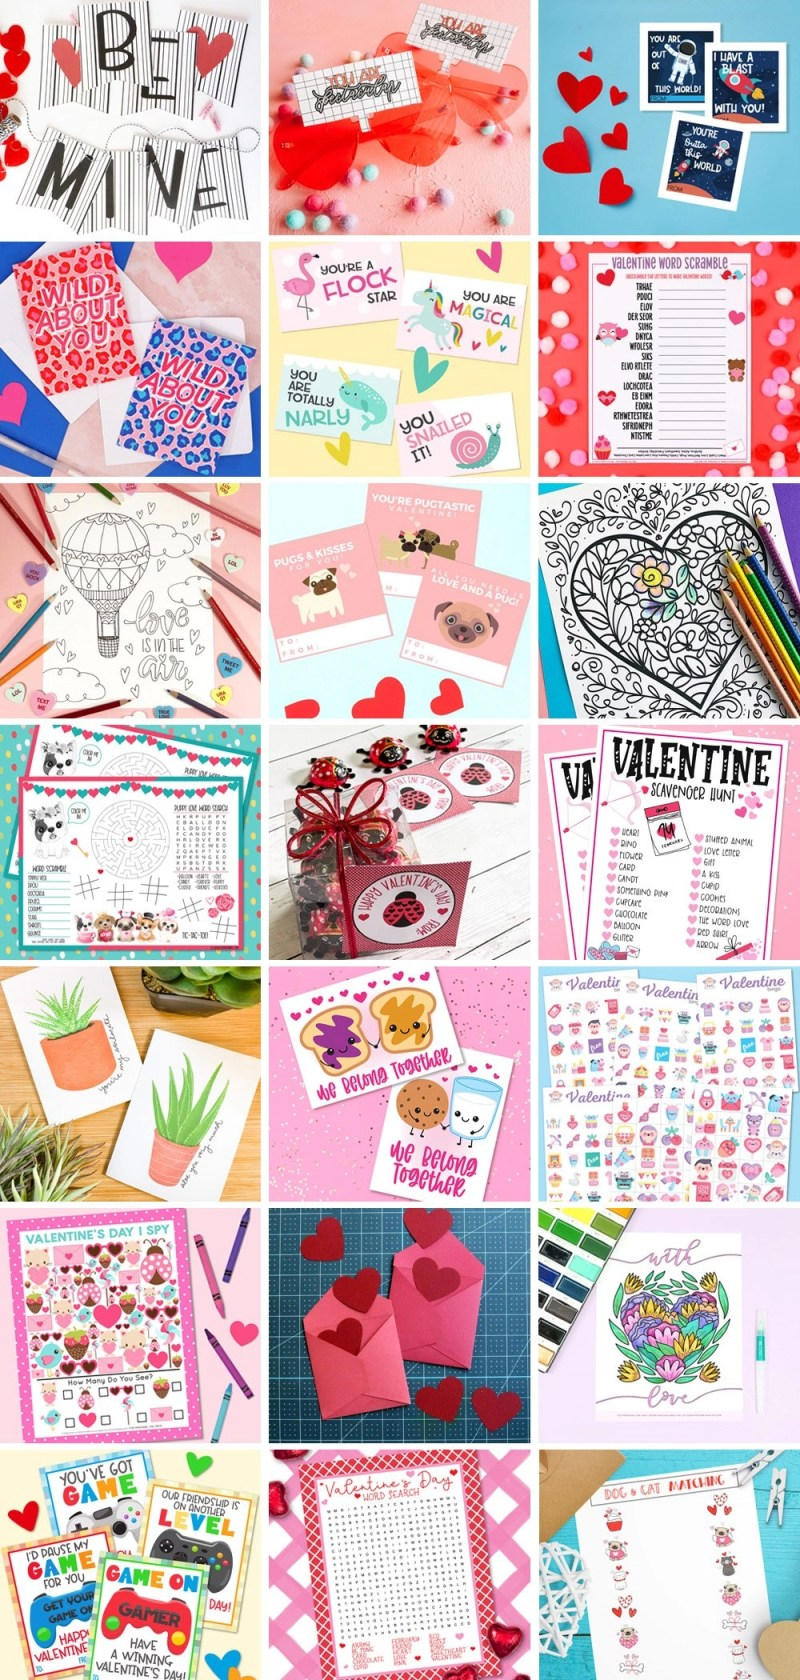 21 FREE Valentine's Day Printables including Love is in the Air Coloring Page by Creatively Beth